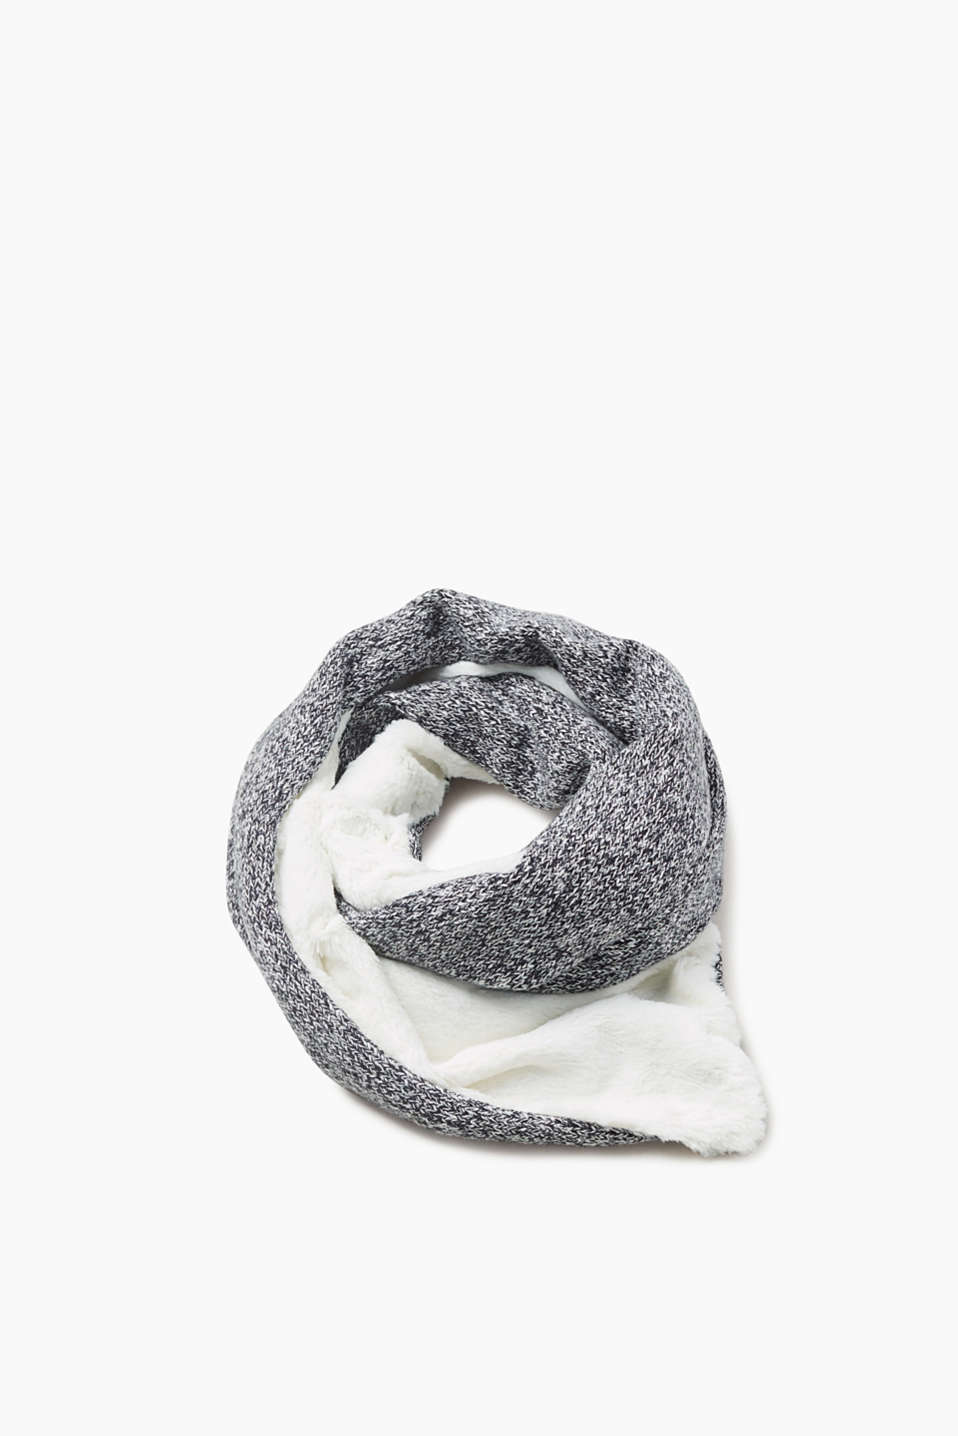 Cuddle on up: melange knitted scarf with fluffy fake fur